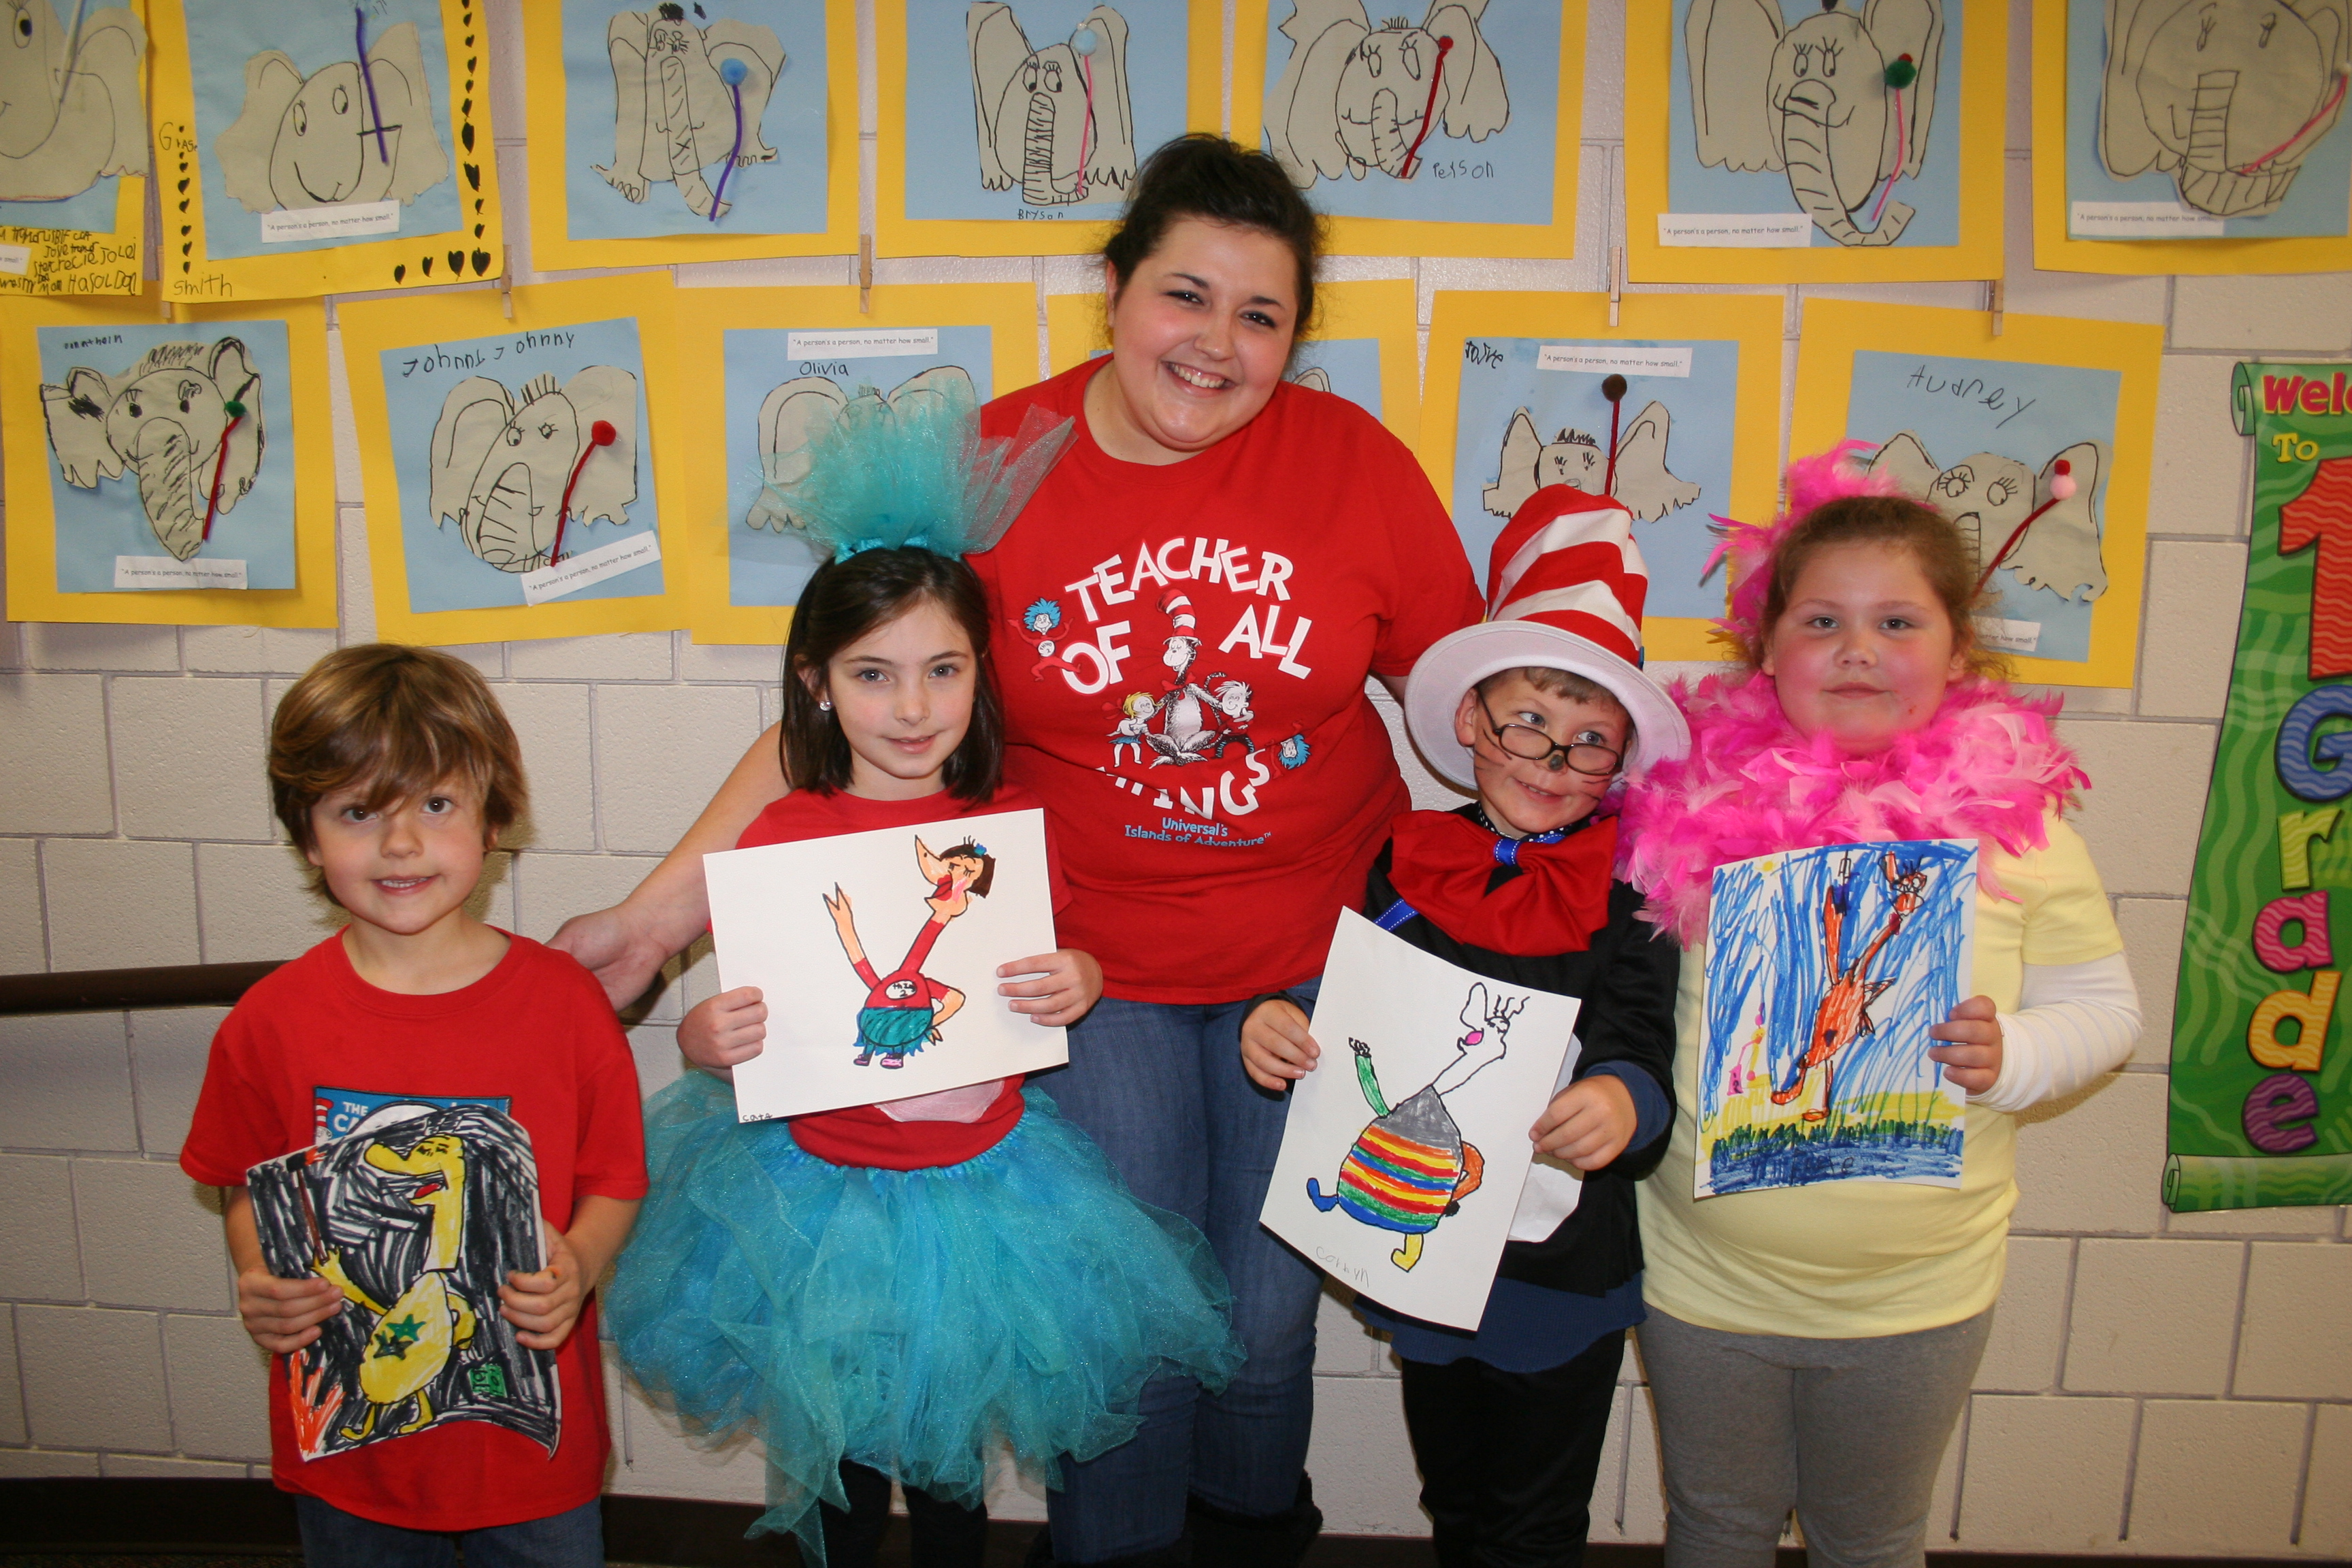 students in Dr. Seuss costumes